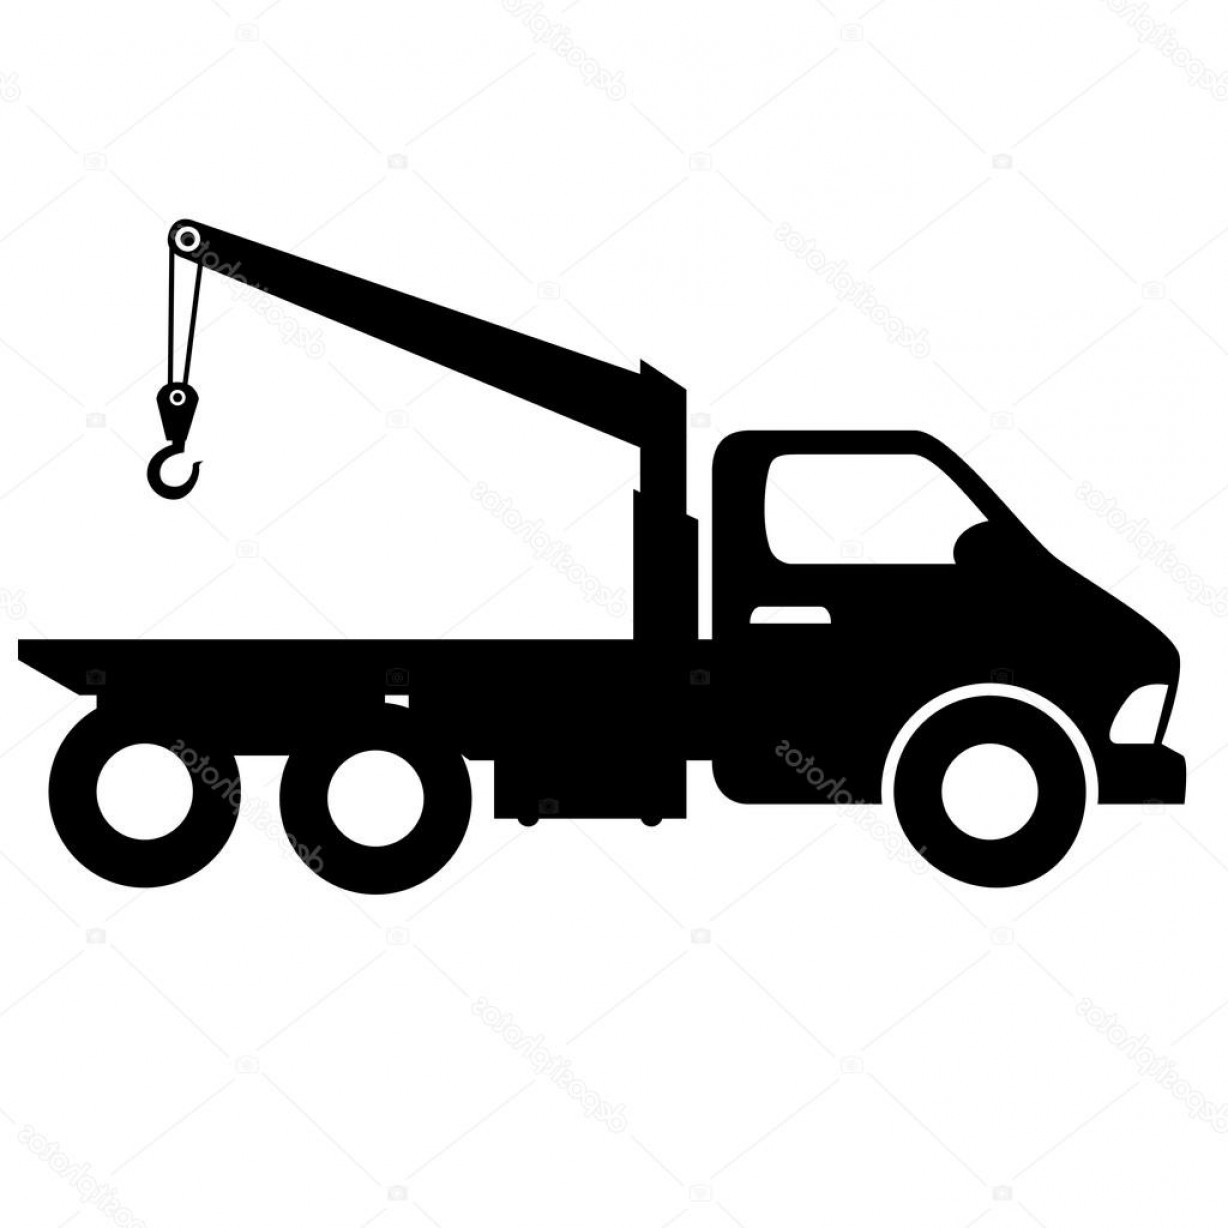 Towing Vector Clip Art: Stock Illustration Car Towing Truck Silhouette